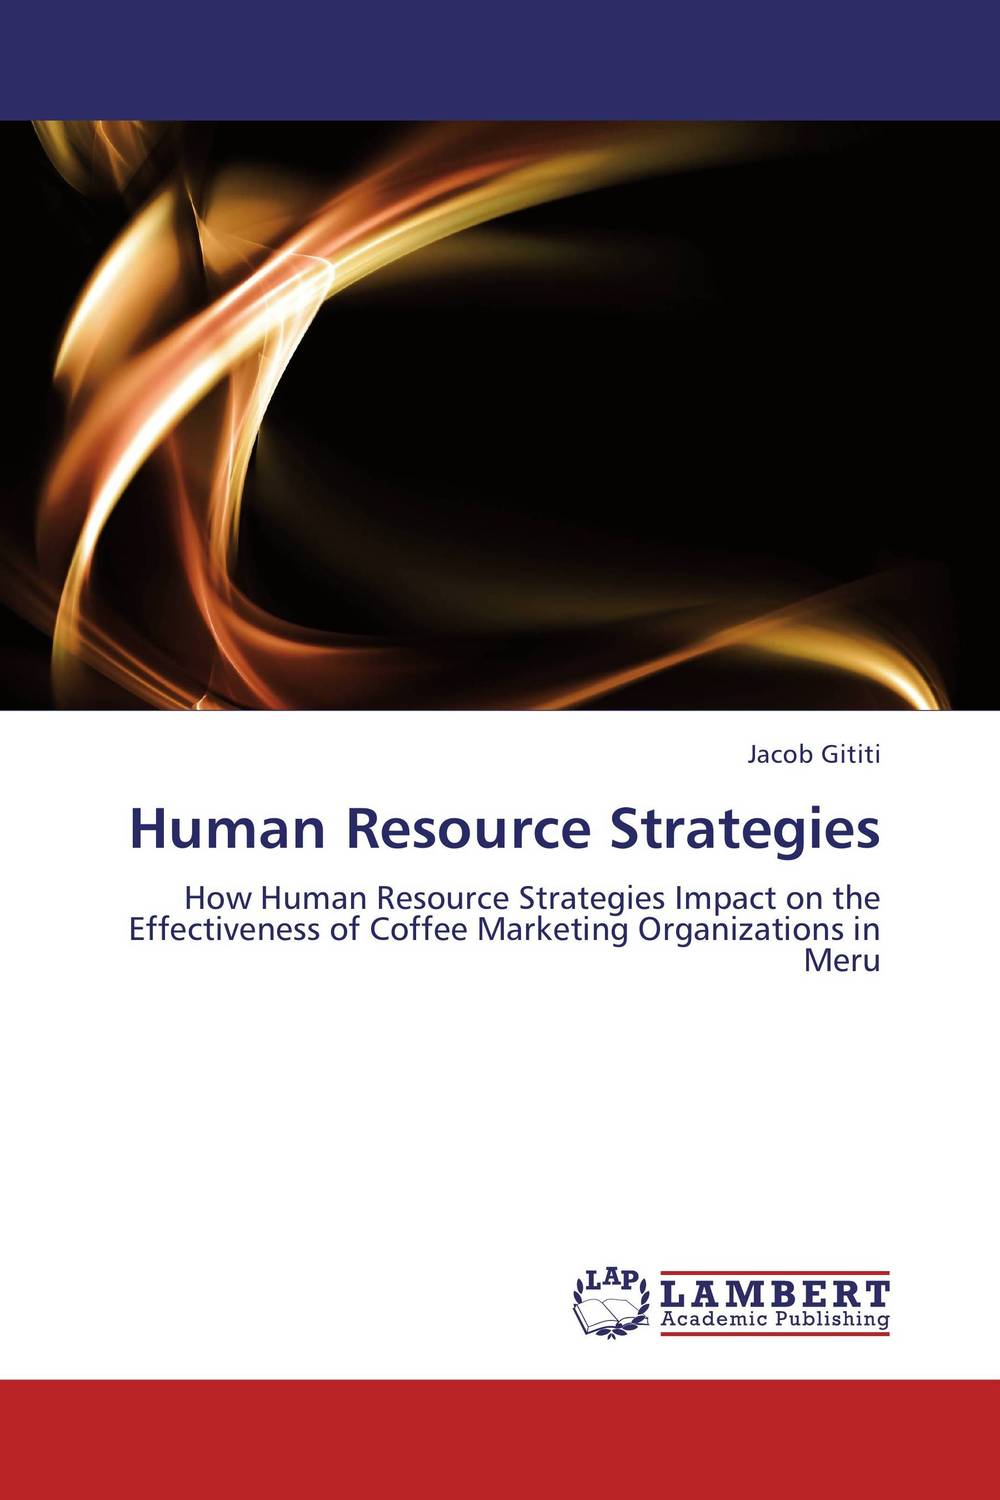 Human Resource Strategies building value through human resources